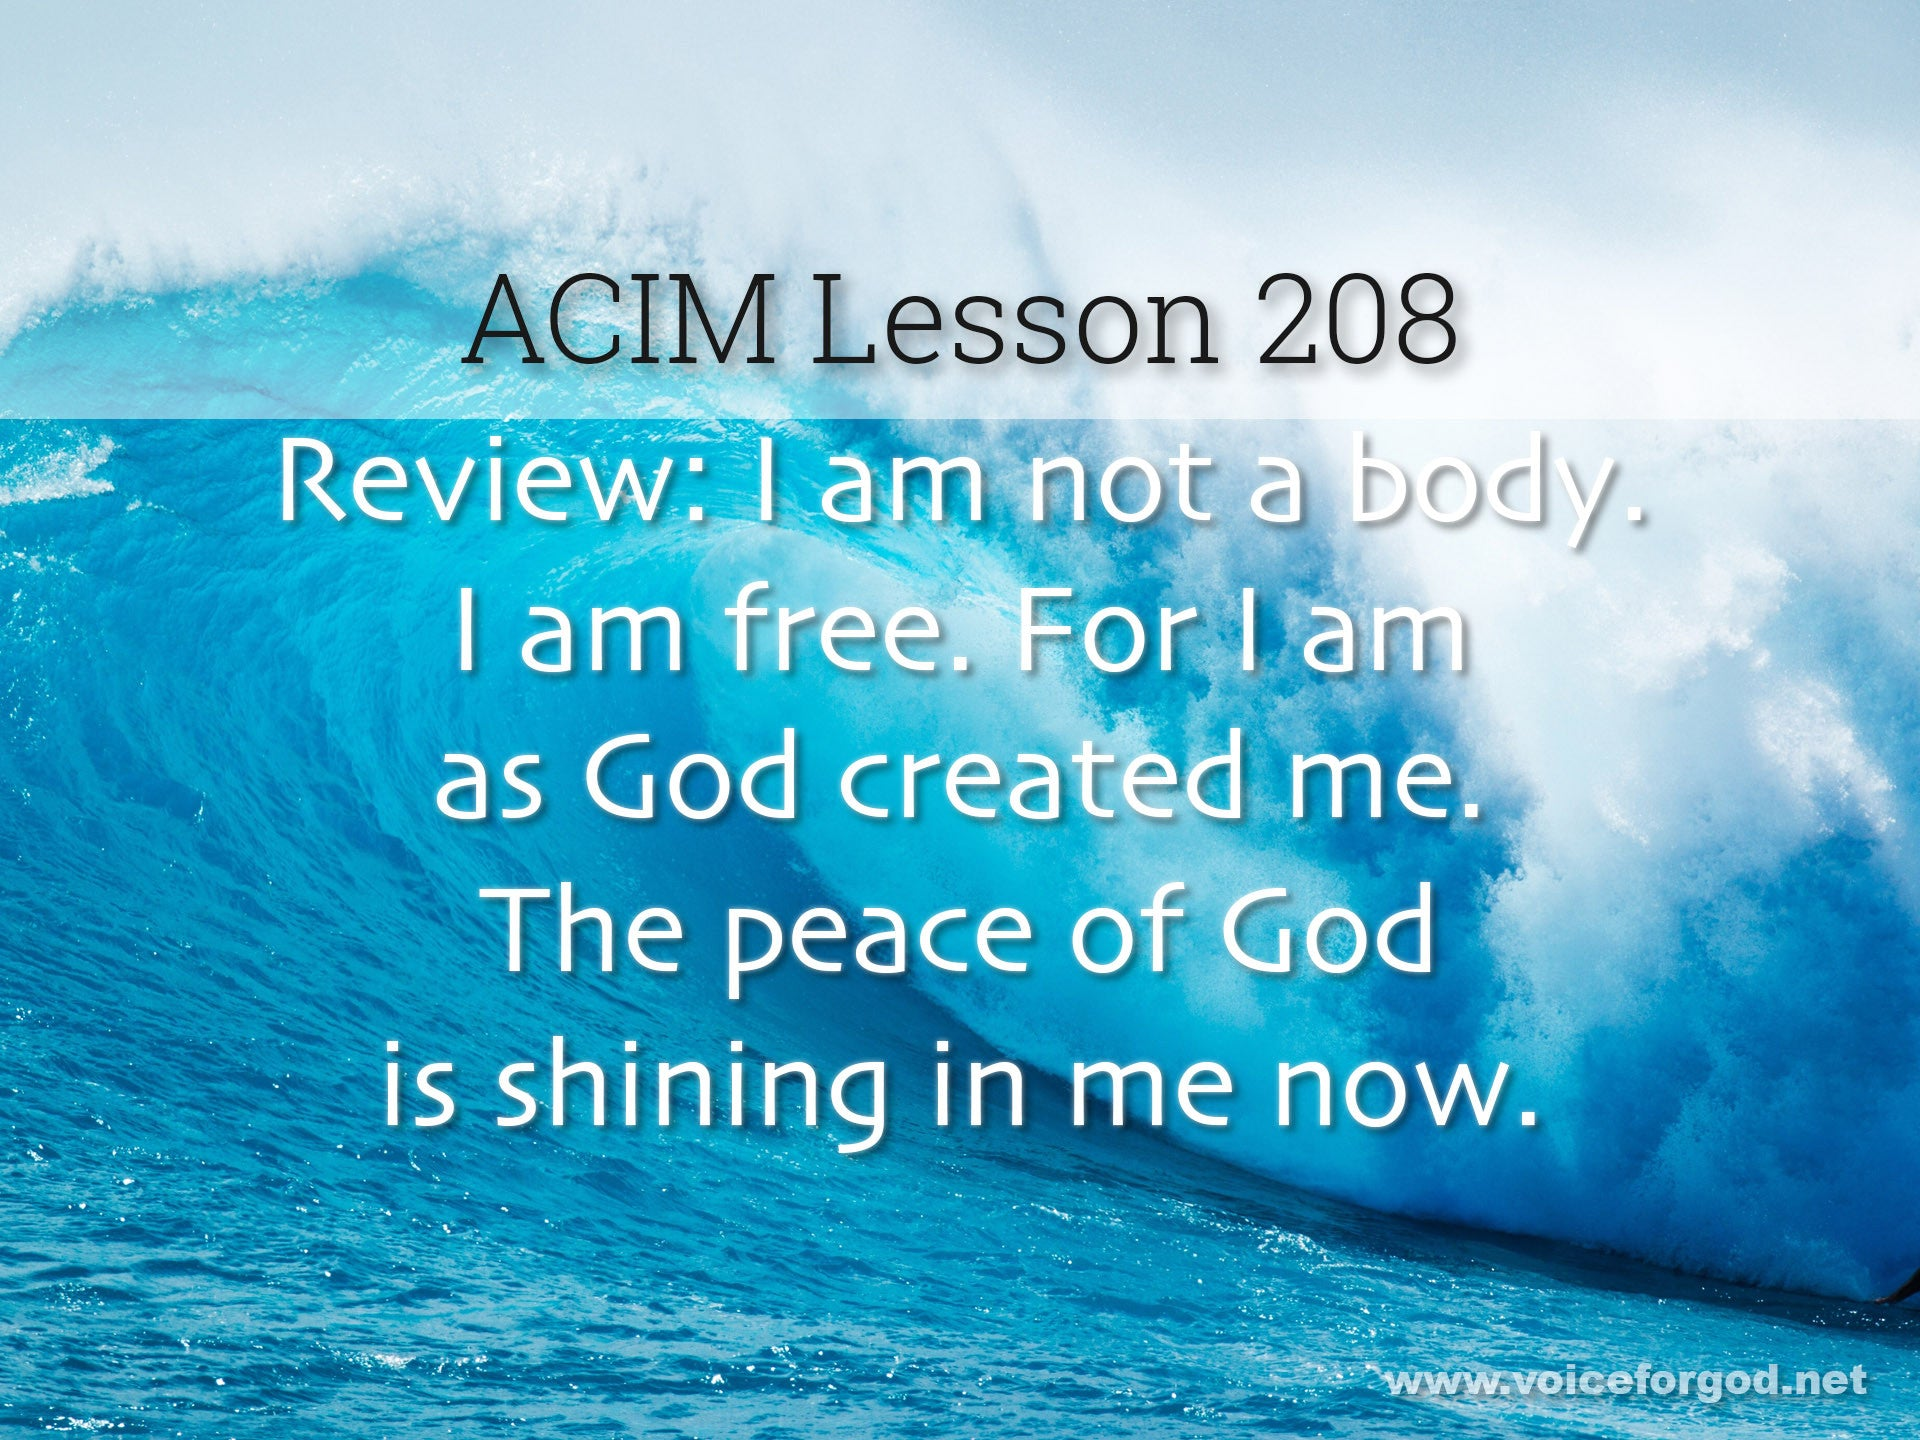 ACIM Lesson 208 - A Course in Miracles Workbook Lesson 208